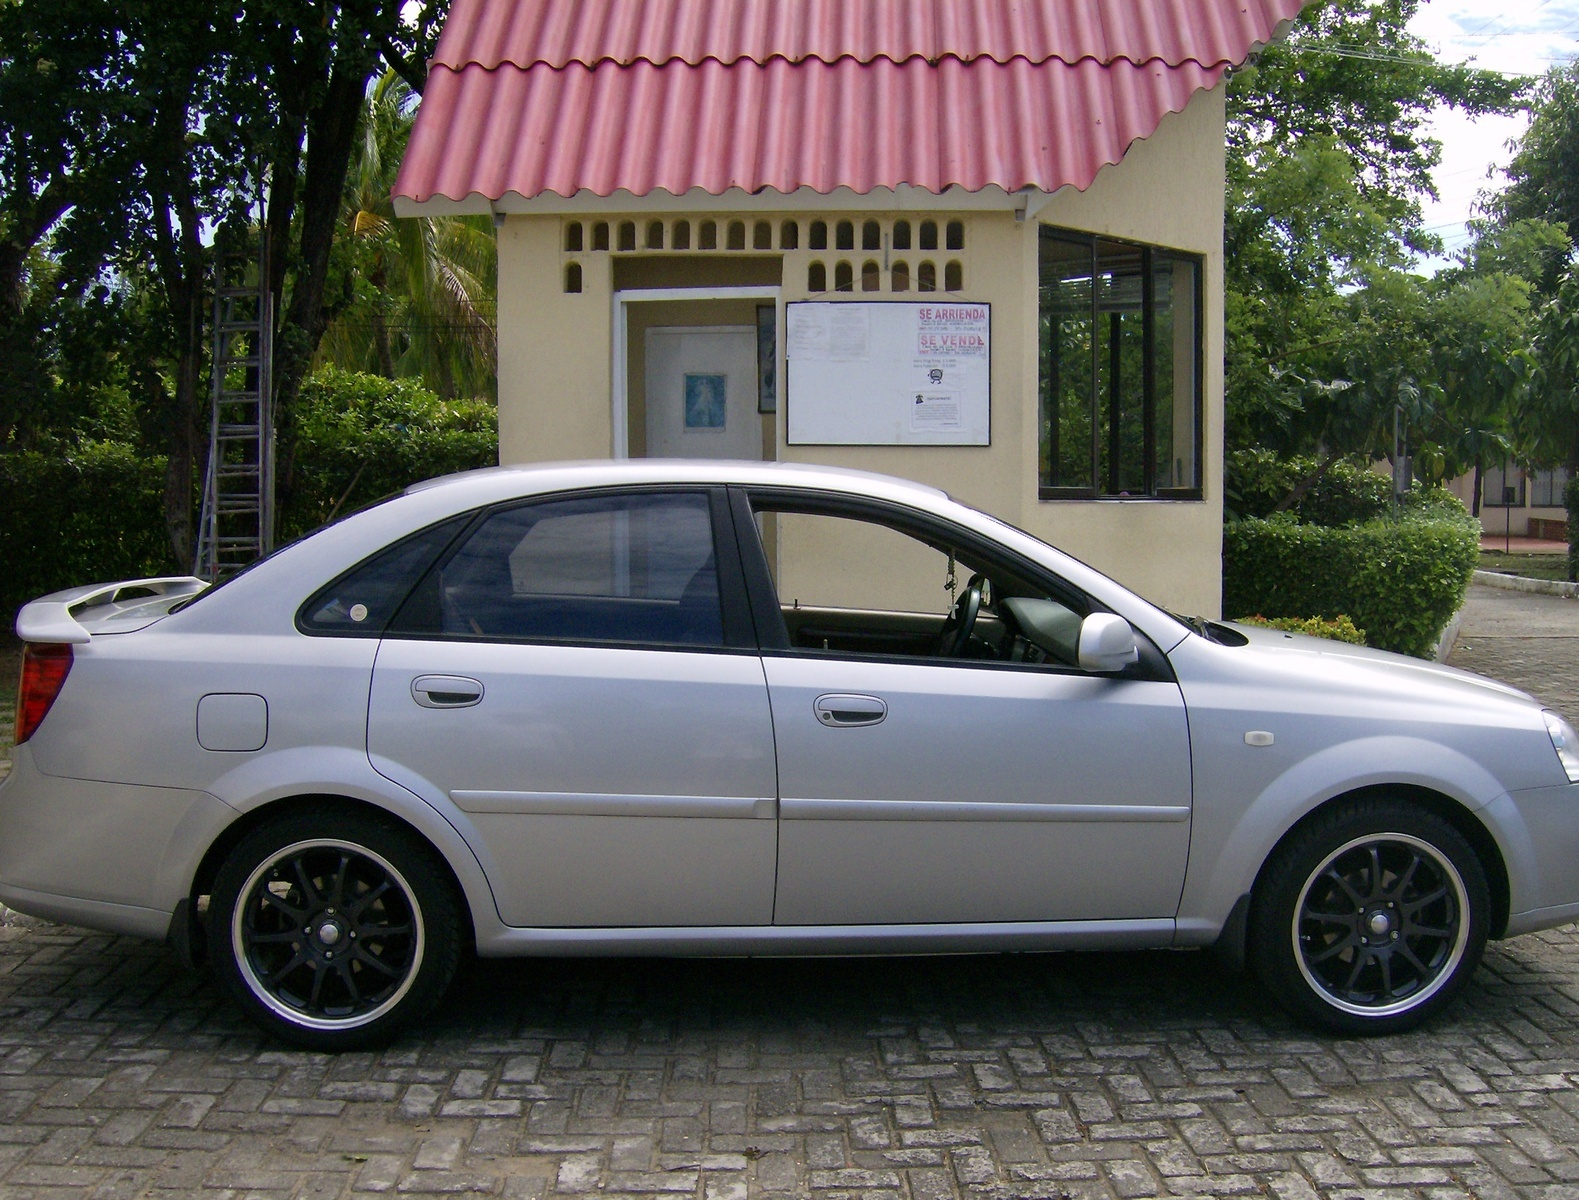 All Chevy chevy 2005 : 2005 Chevrolet Optra - Overview - CarGurus